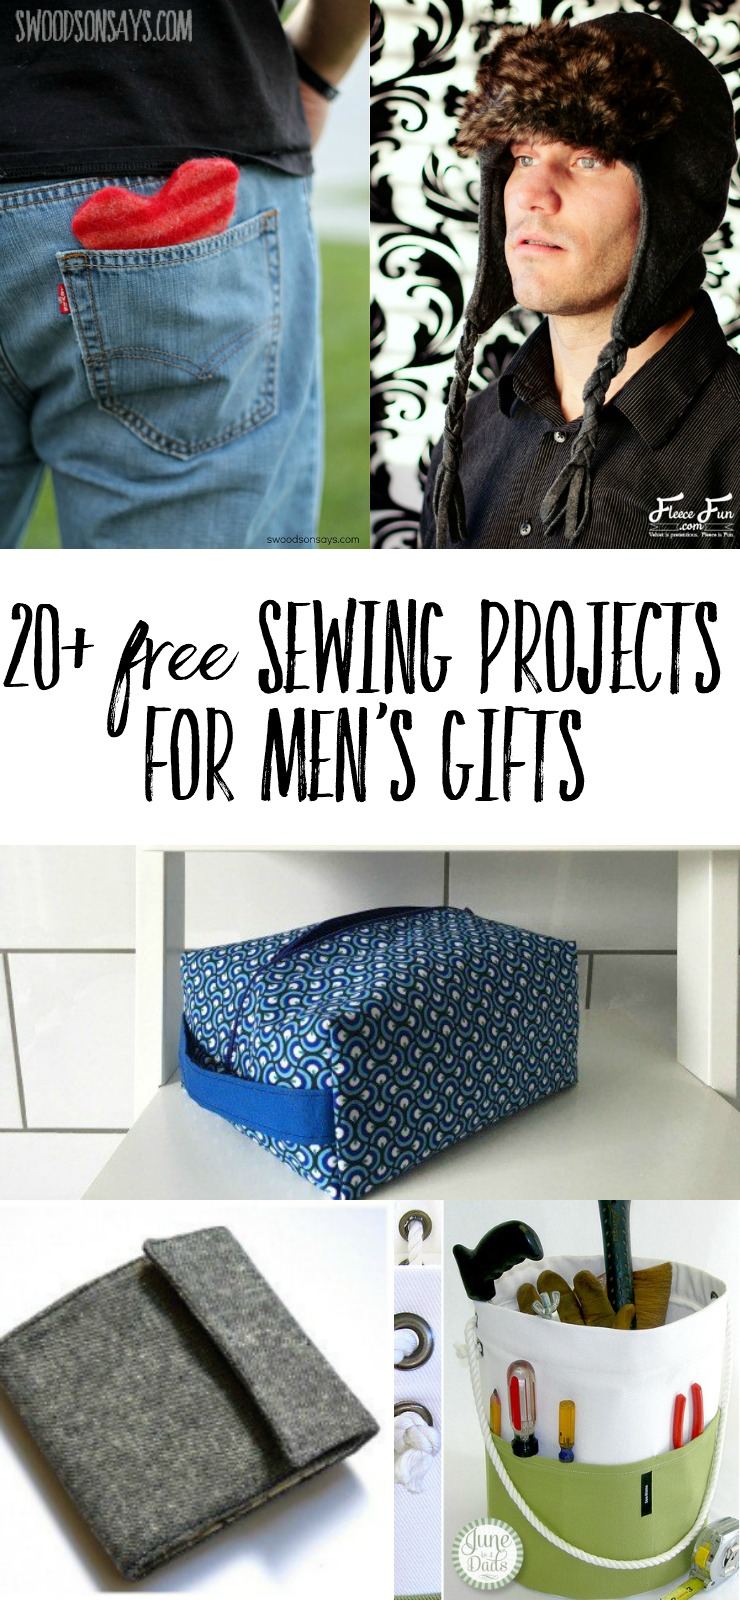 97c06aa63 20+ Free Sewing Projects for Men's Gifts – OBSiGeN